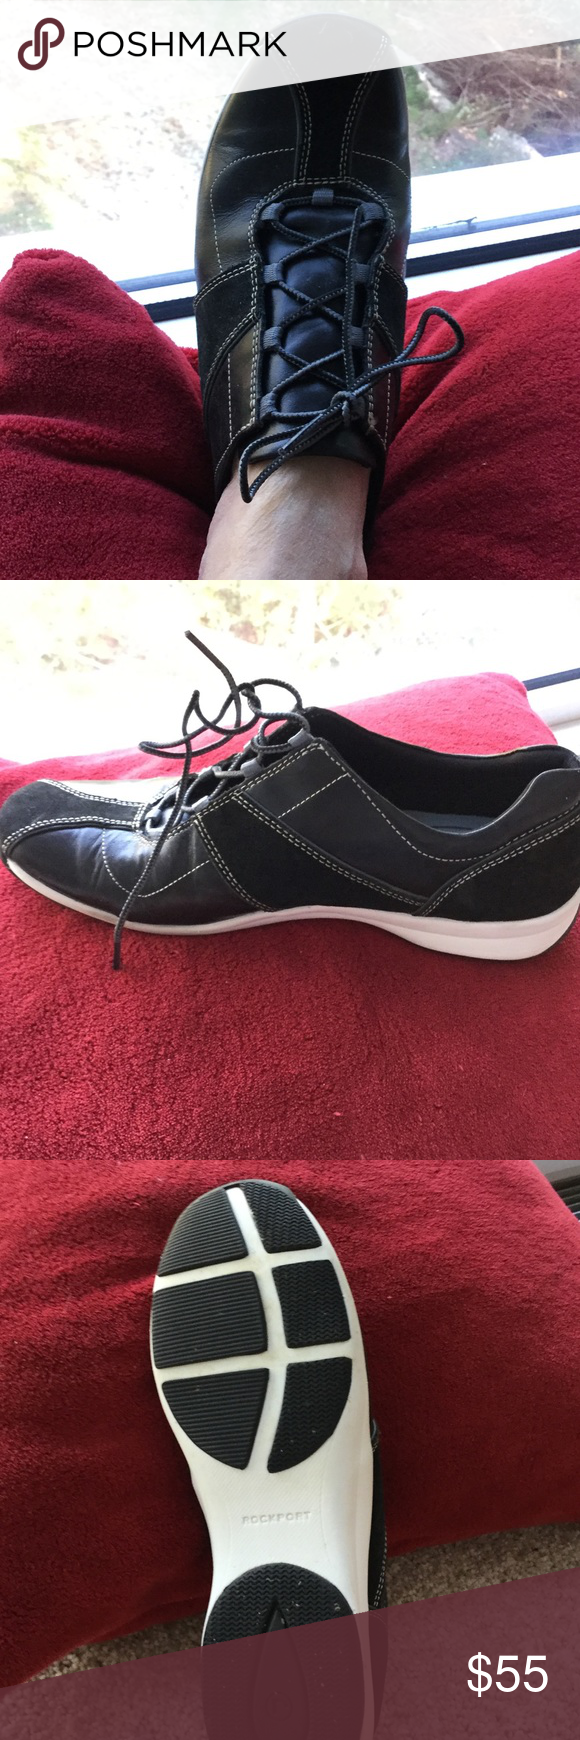 New Rockport casual shoe, 7.5 Nwot black leather and suede athletic shoe, never worn. Spotless interior and bottom of shoes. Couple tiny scuffs from mingling with other shoes. Pretty near perfect! 7.5 white stitching, rubber bottoms Rockport Shoes Athletic Shoes